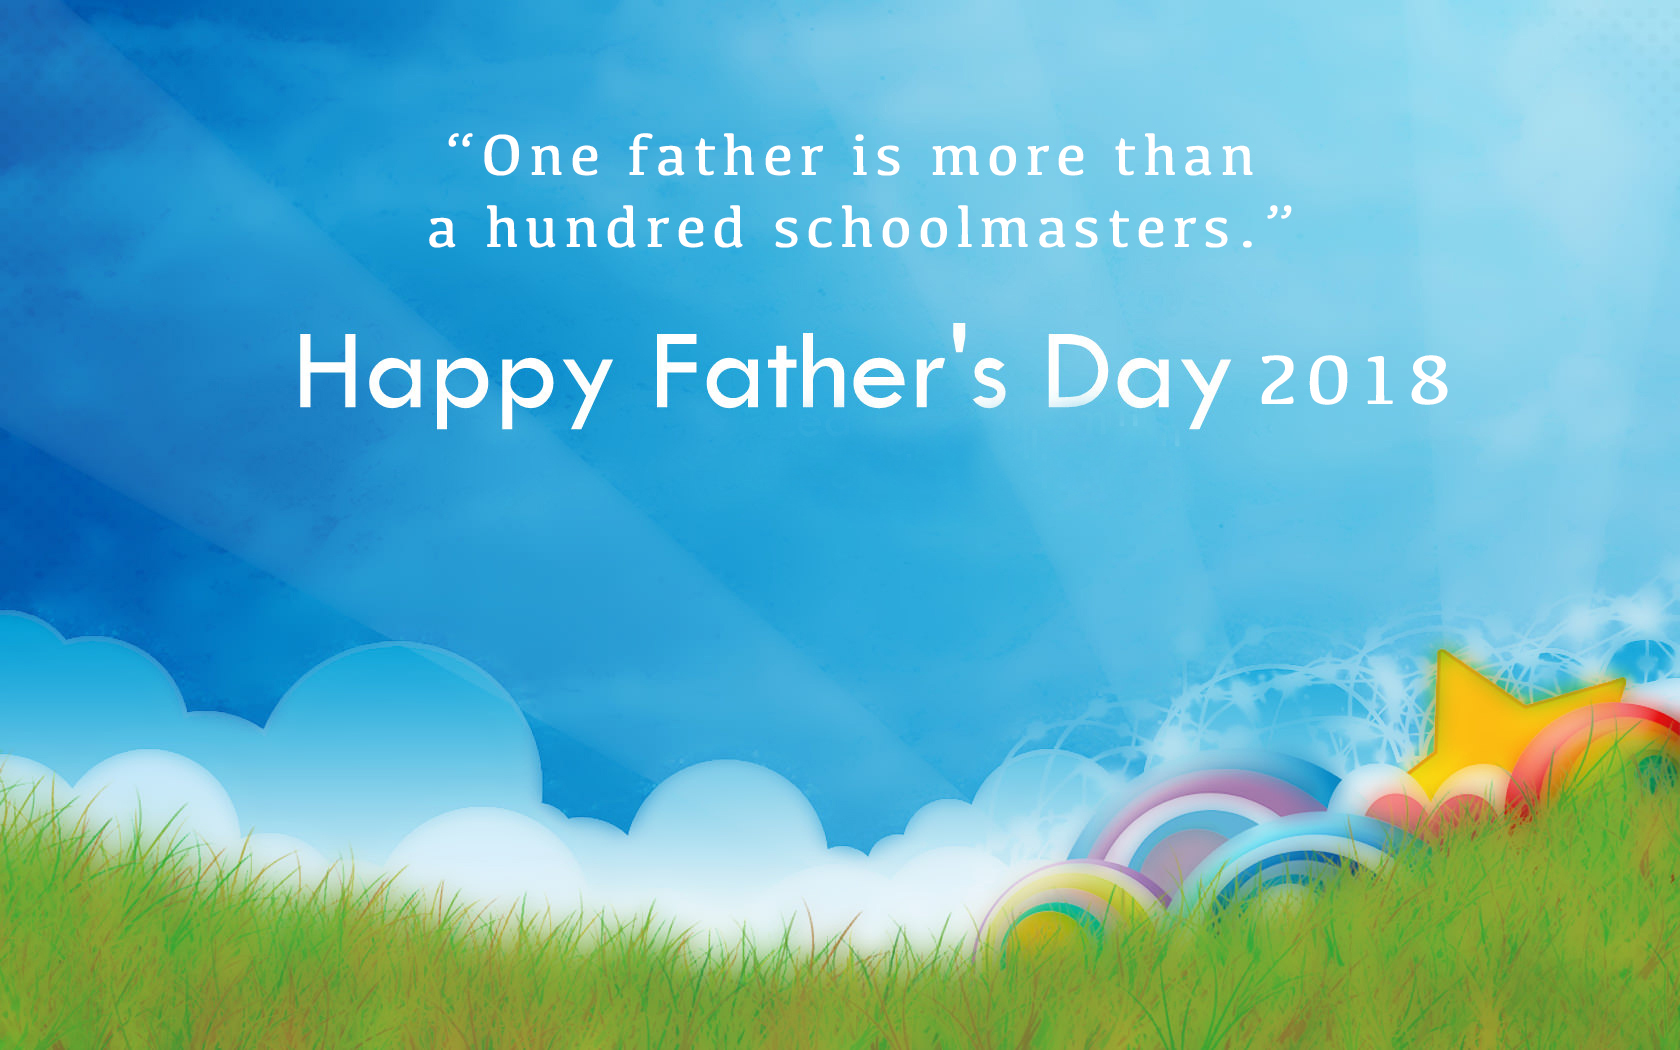 Happy Fathers Day Desktop Wallpaper 1680x1050